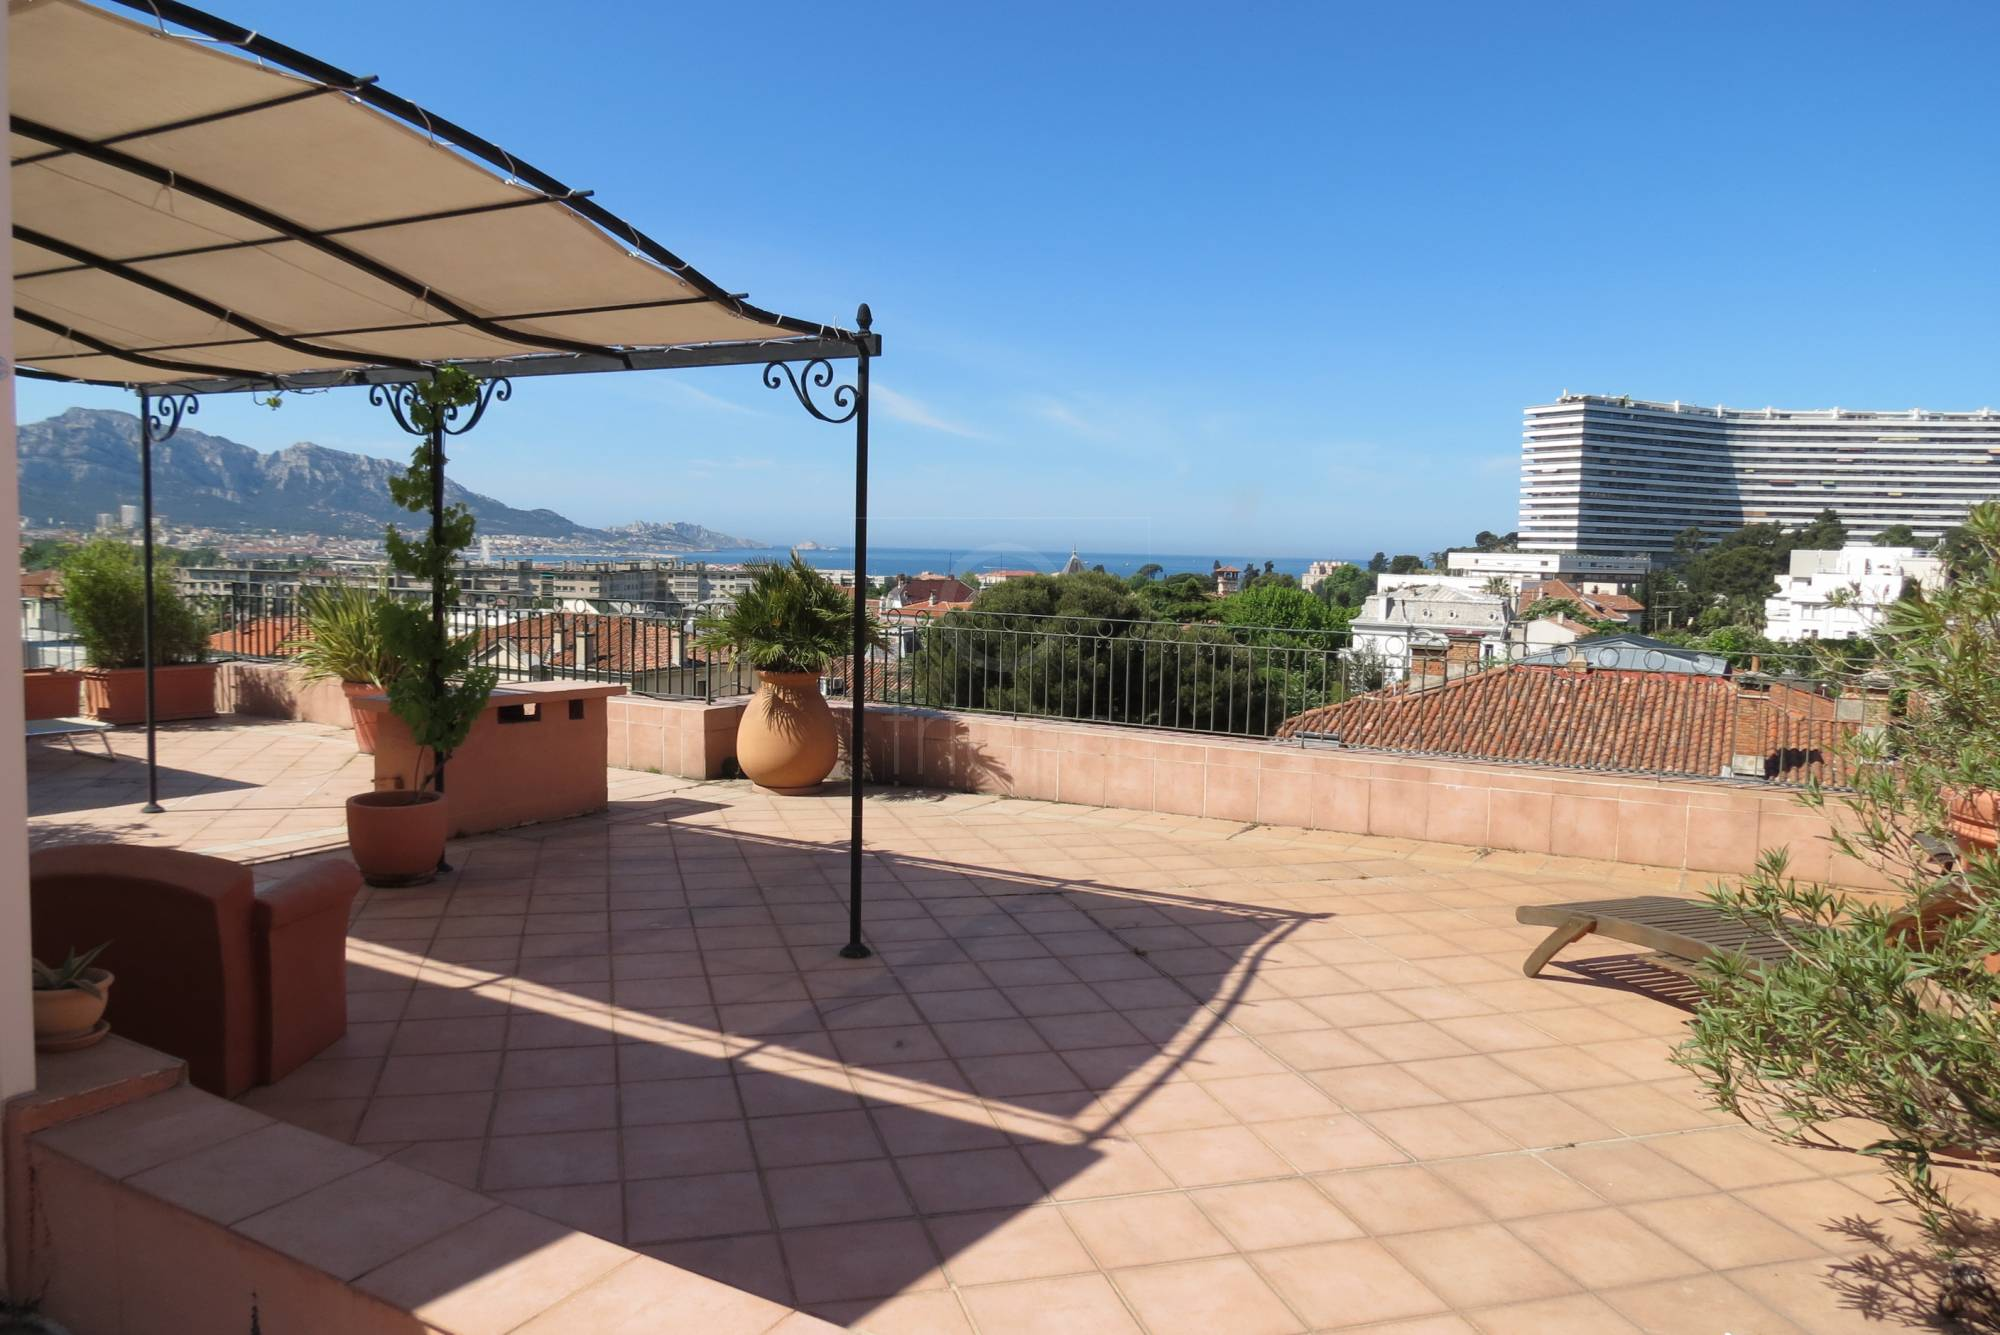 Vente appartement t4 f4 marseille 8eme rue paradis toit for Location appartement marseille terrasse